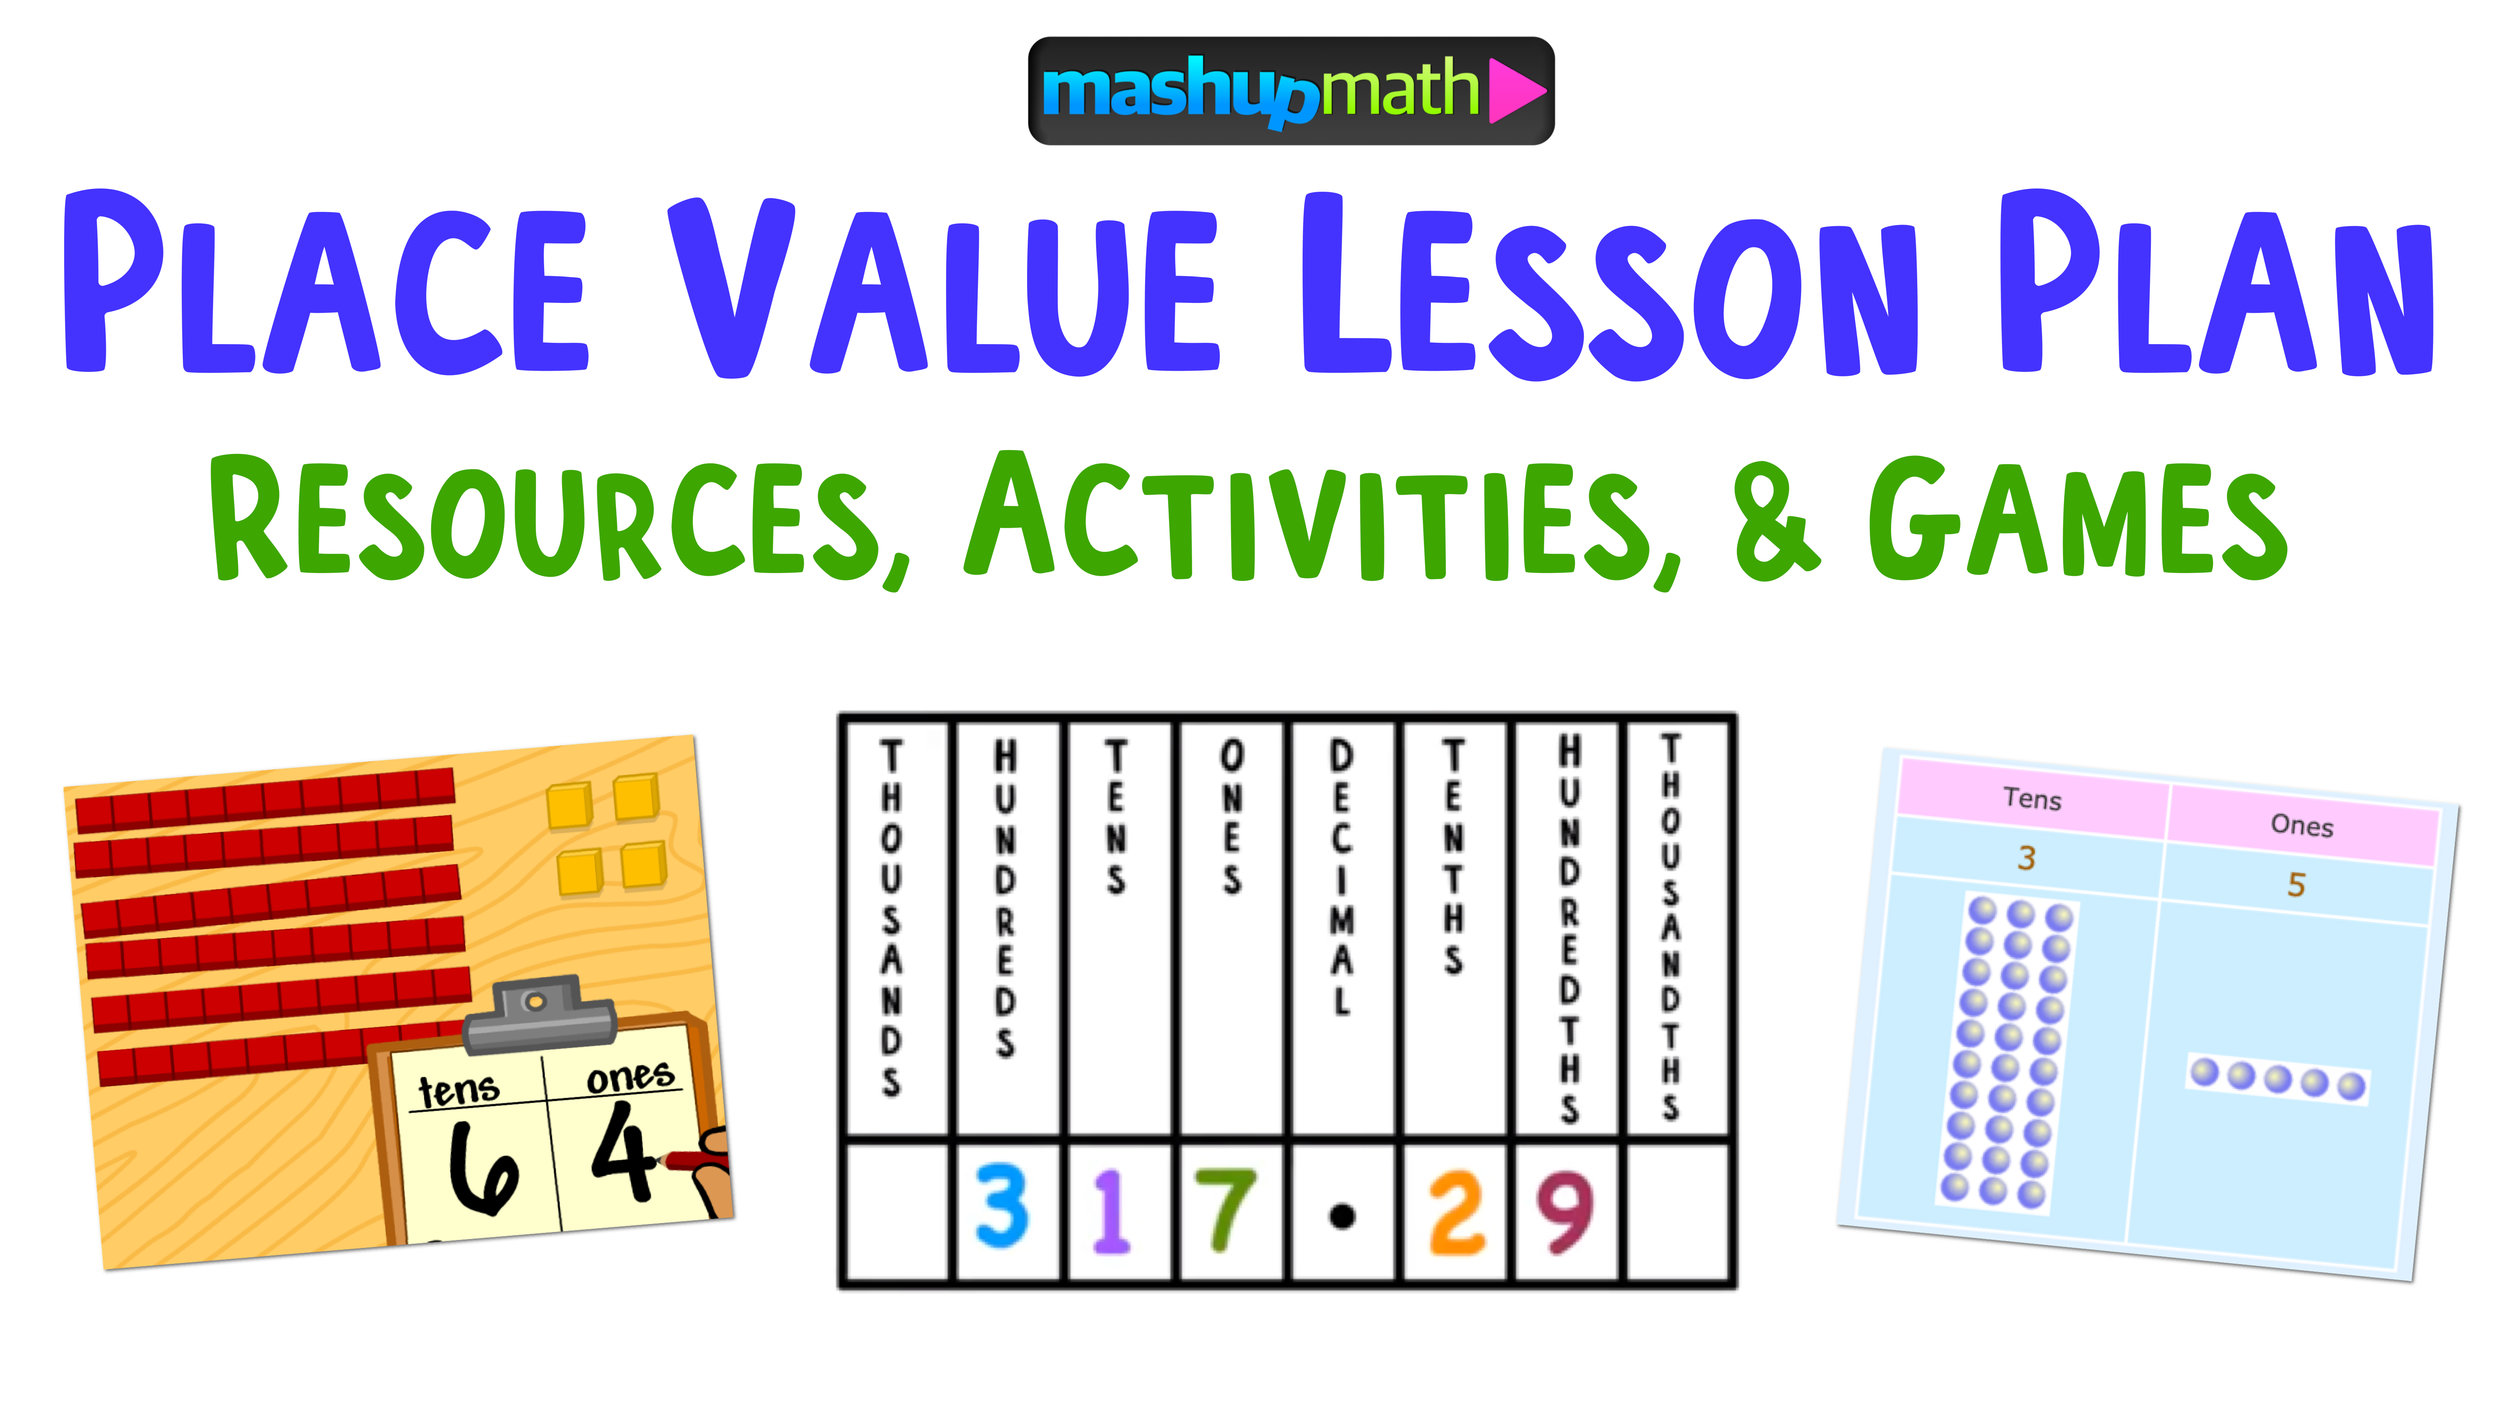 Place Value Lesson Plan Resources The Best Of The Best Mashup Math